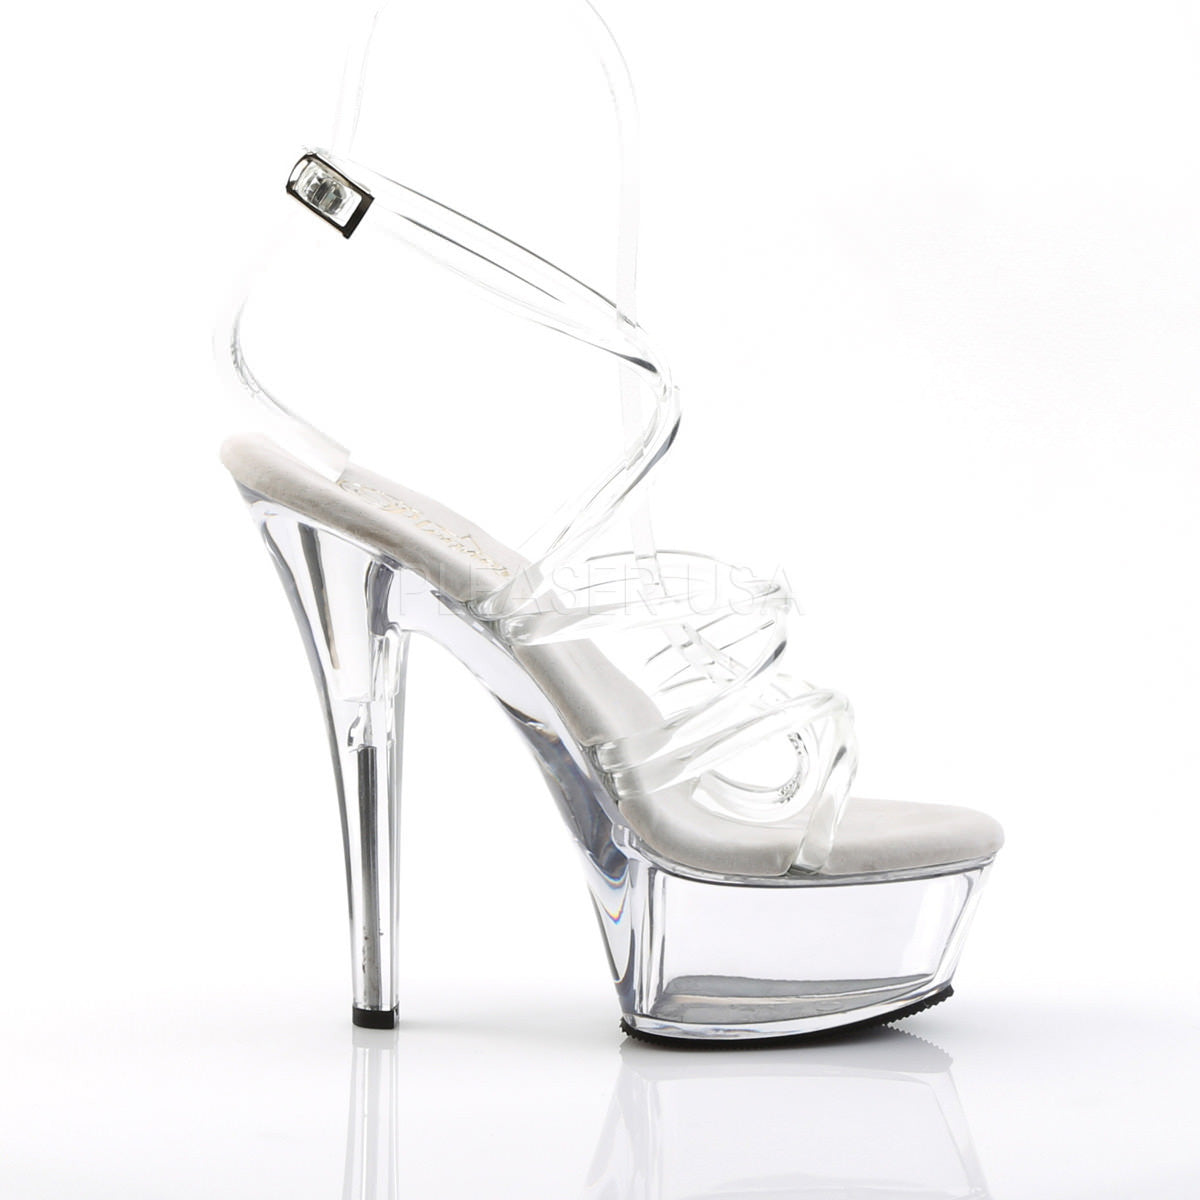 8 inch spiked platform heel play with double squirt 1